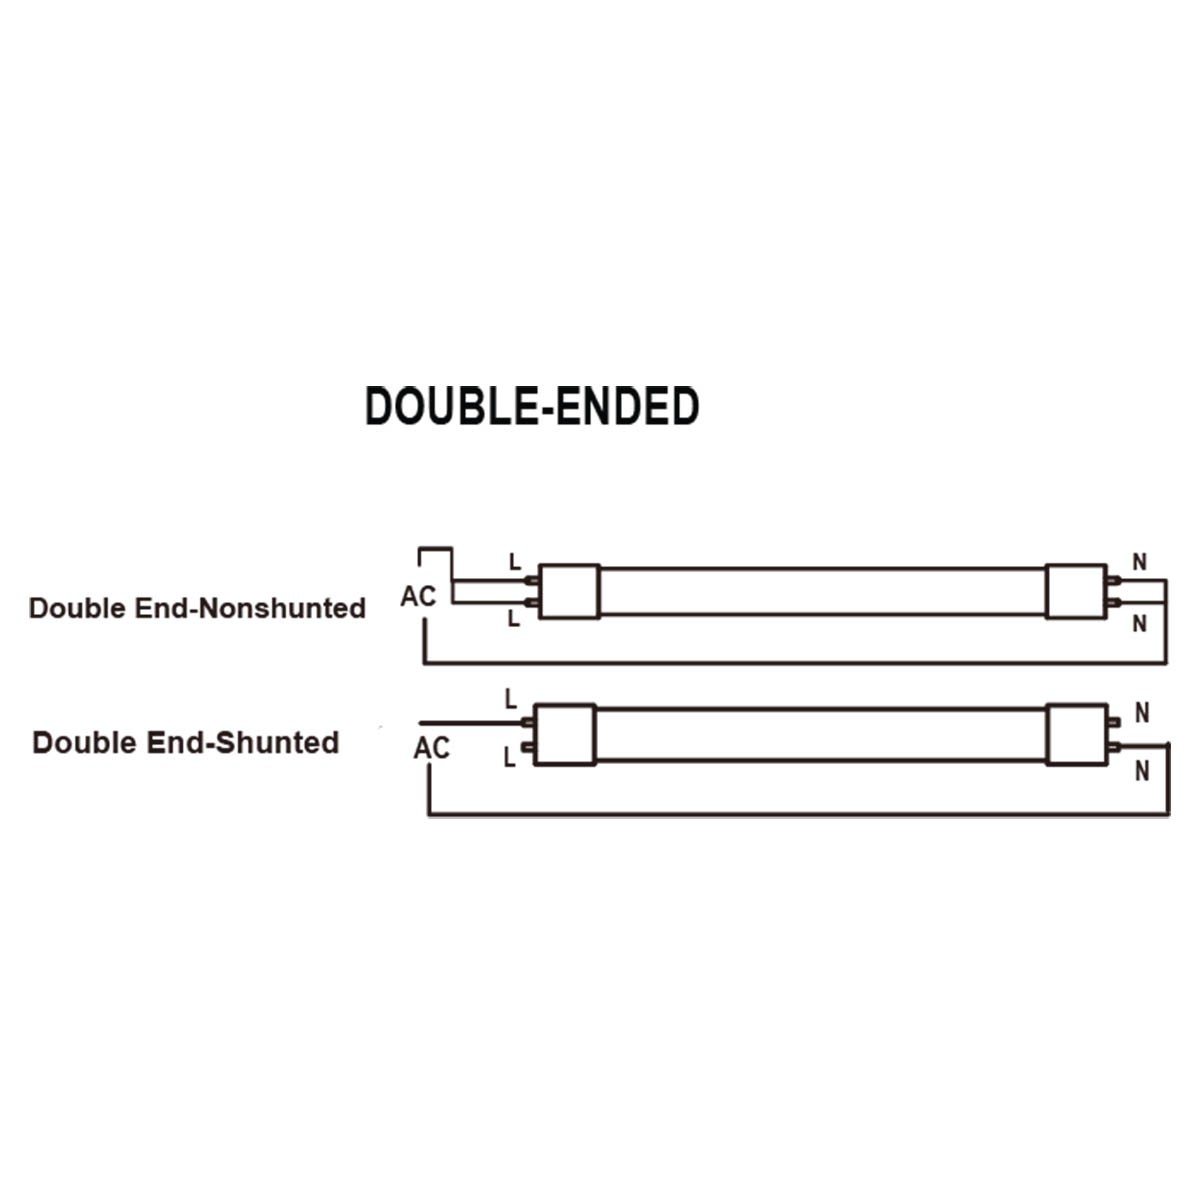 Double-Ended